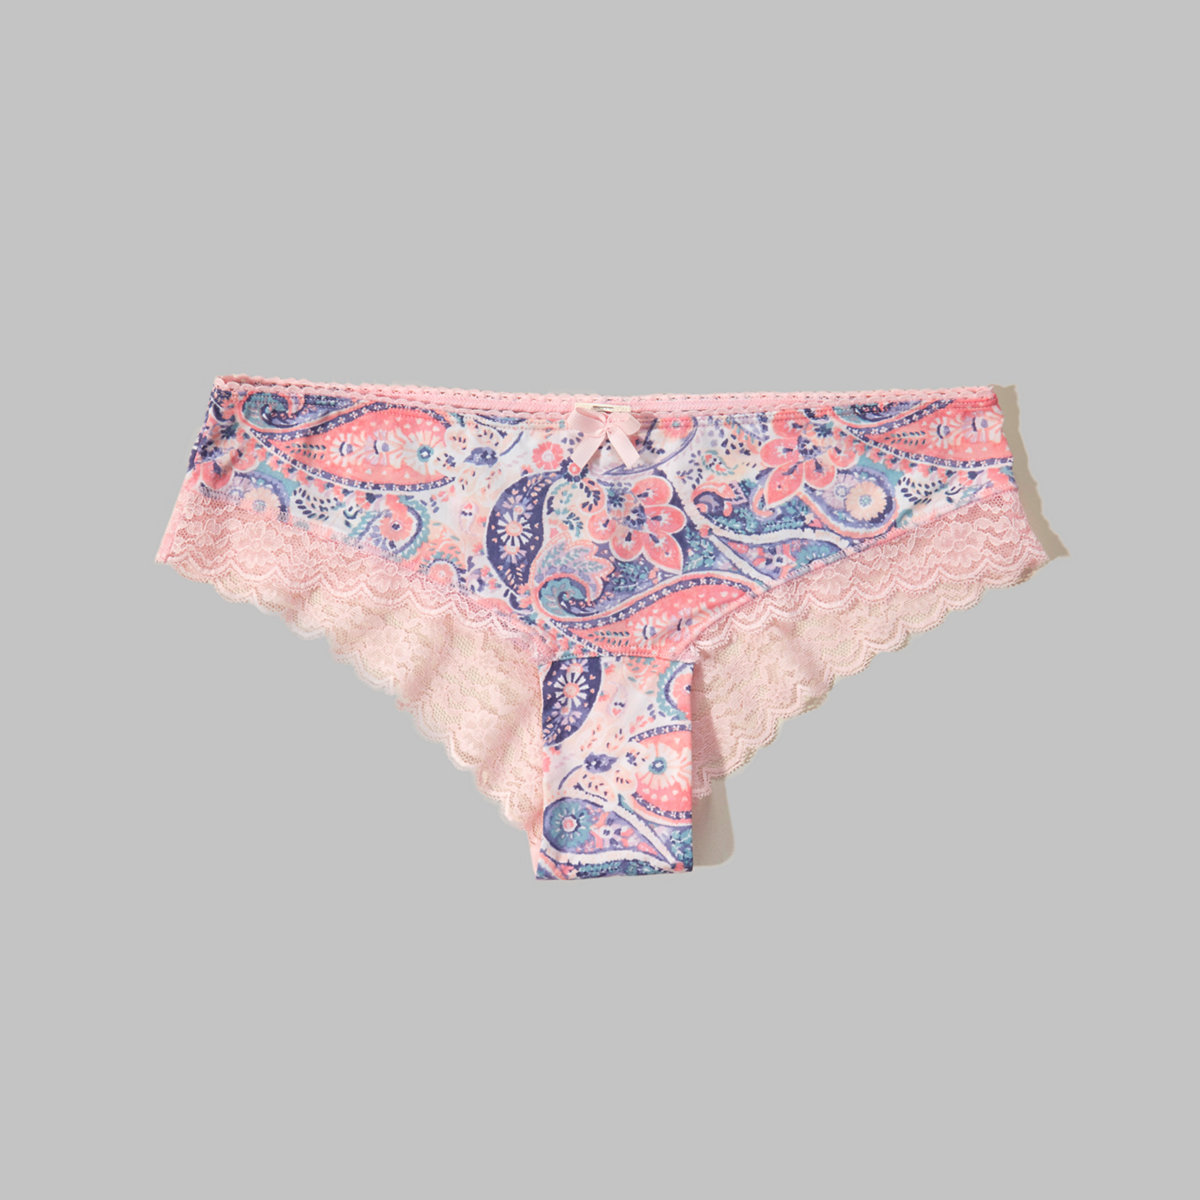 Gilly Hicks Printed Lace-Trim Cheeky